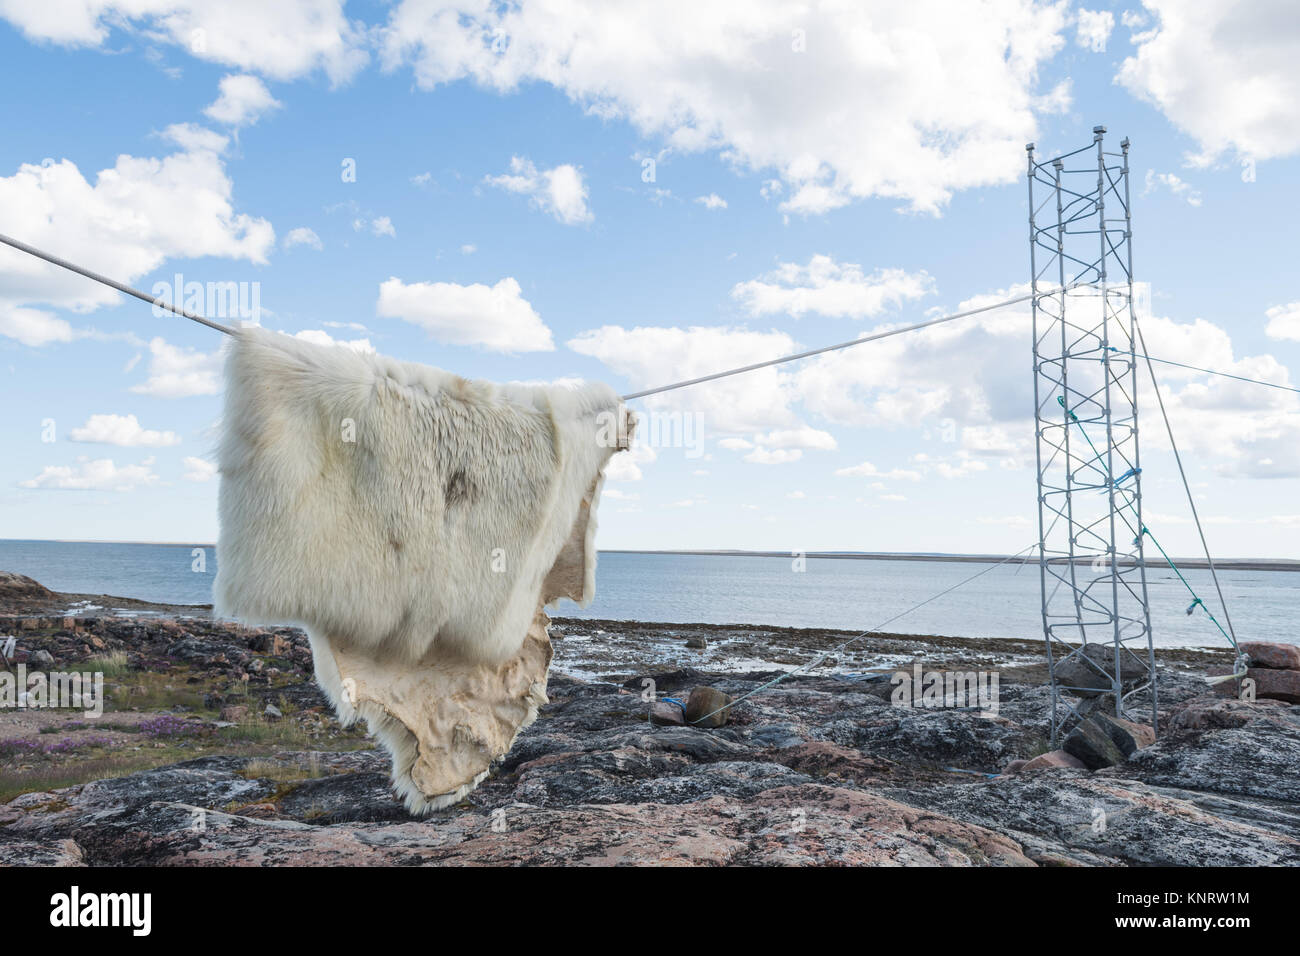 Polar bear skin hanging on clothesline ourdoors - Stock Image